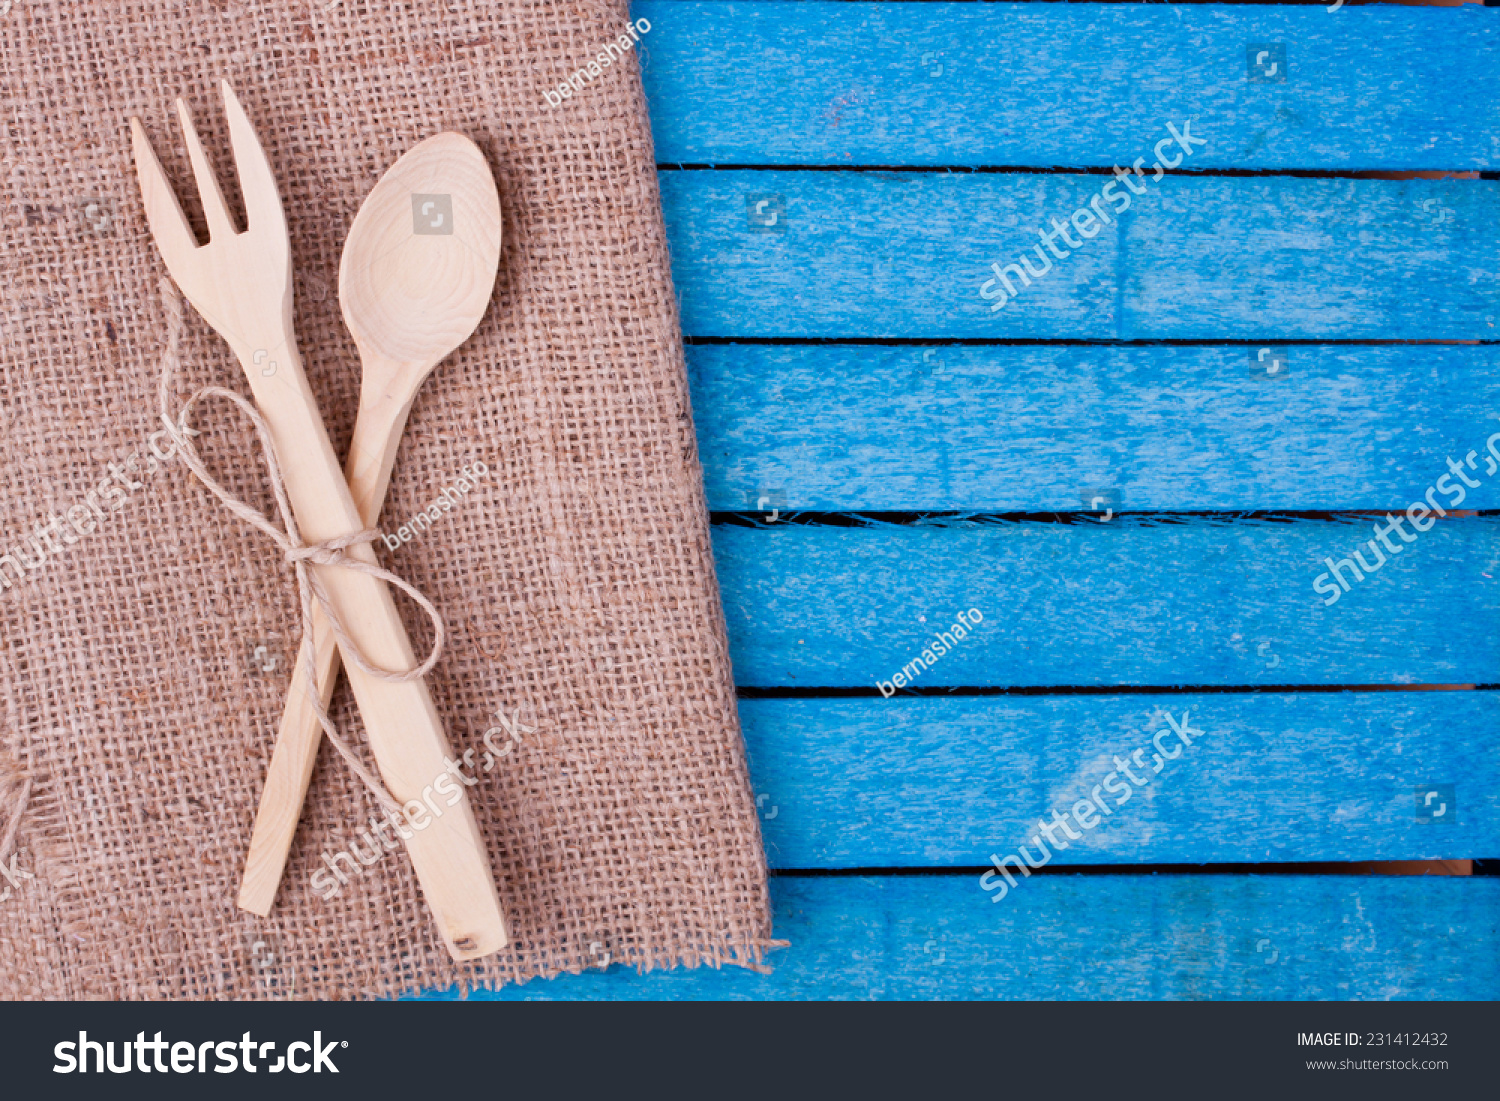 Kitchenware on wooden table with a blue checkered tablecloth | EZ Canvas